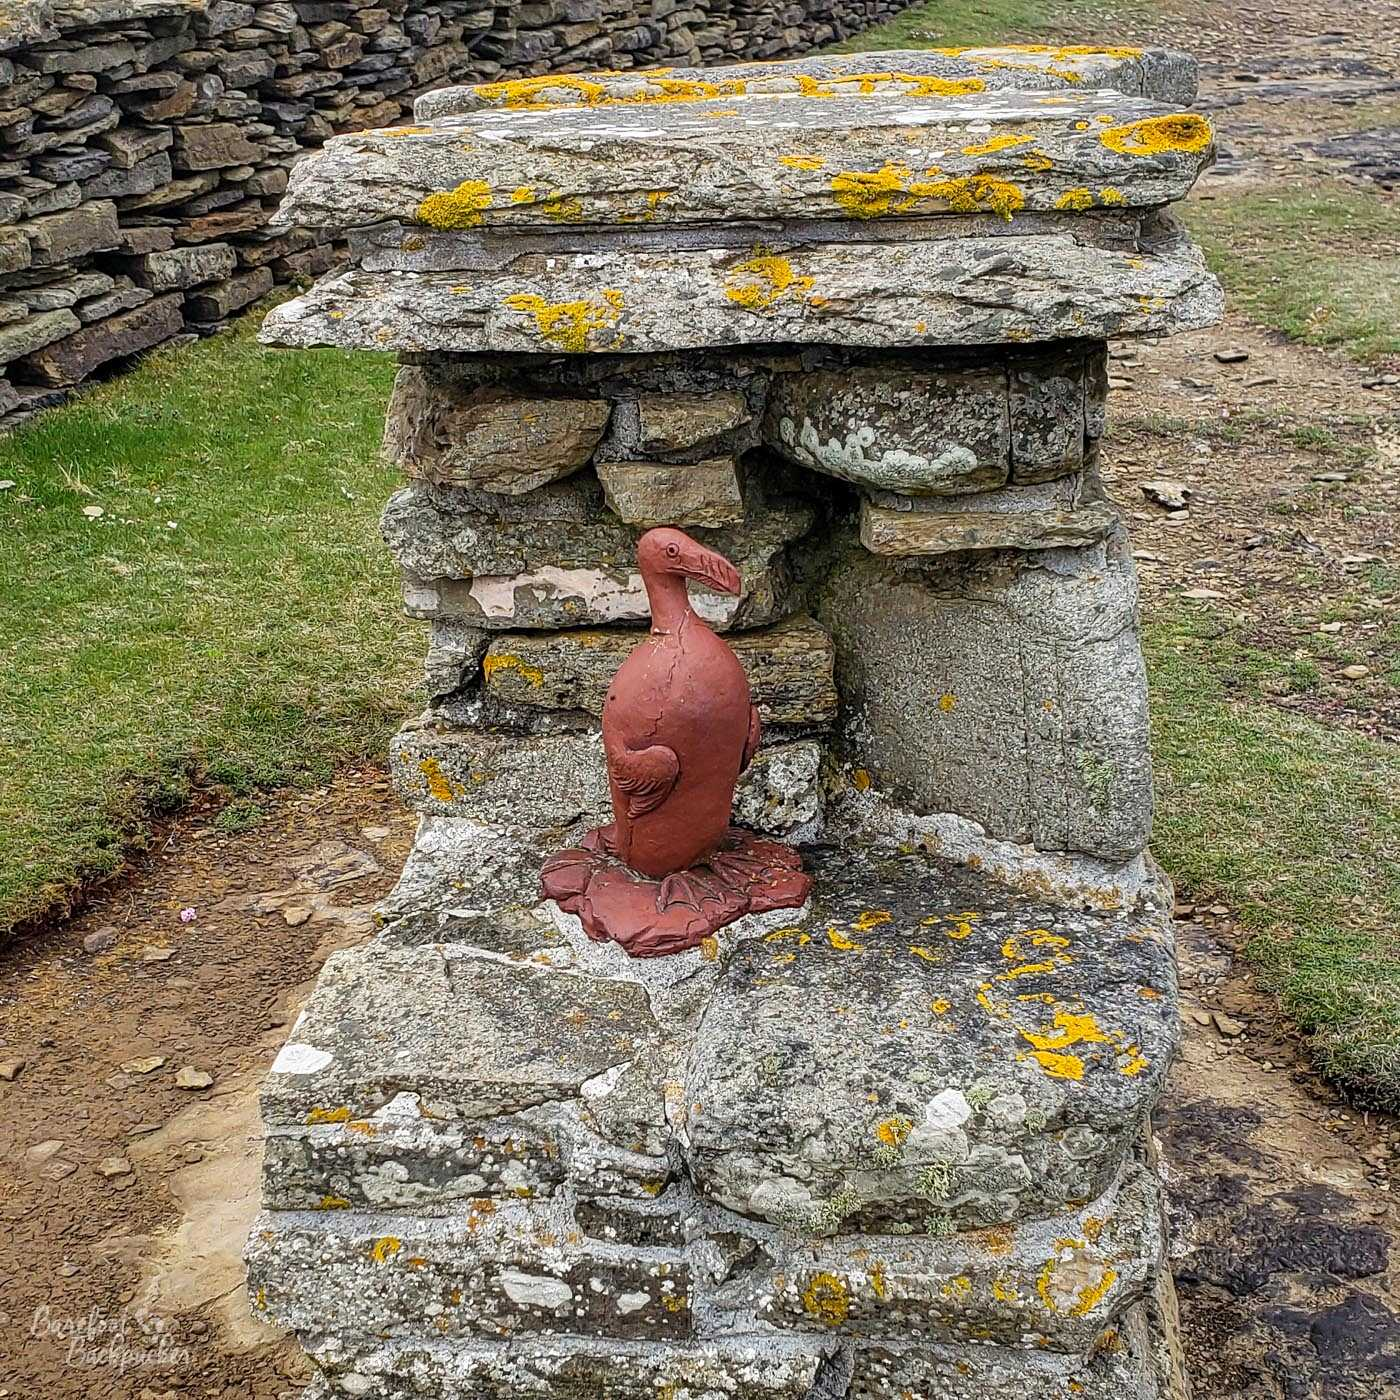 On a stone plinth on a cliff edge is a small red statue of a bird. It looks a bit like a penguin?